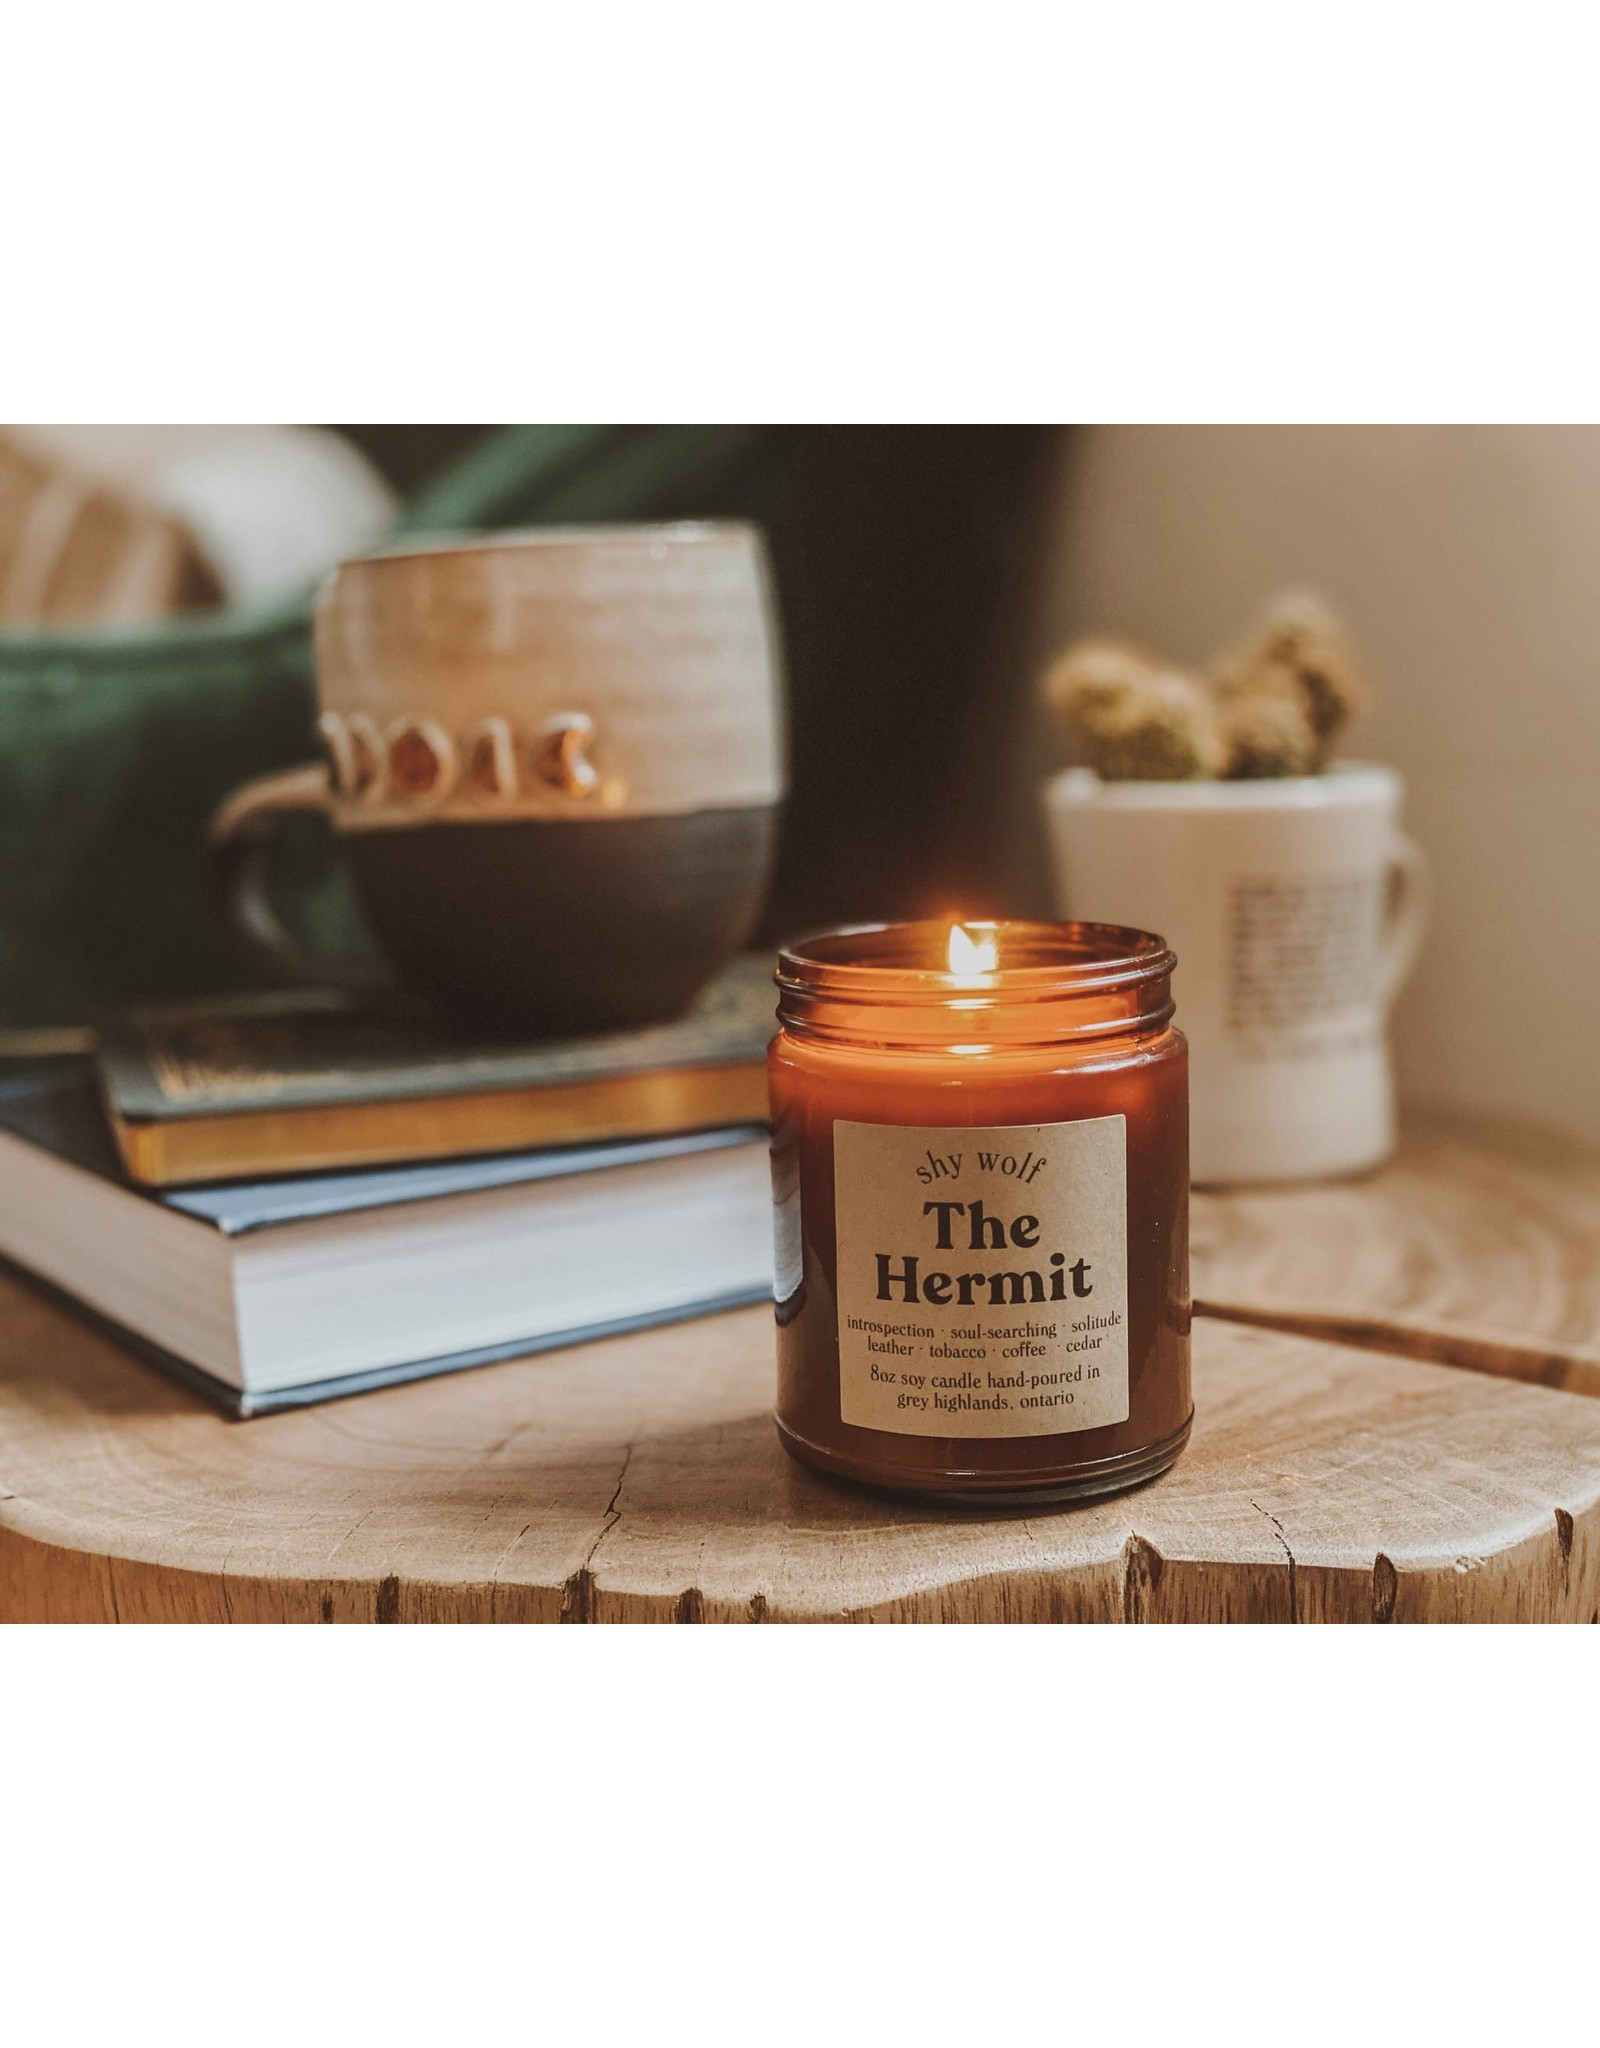 Shy Wolf - The Hermit Candle - 8 oz